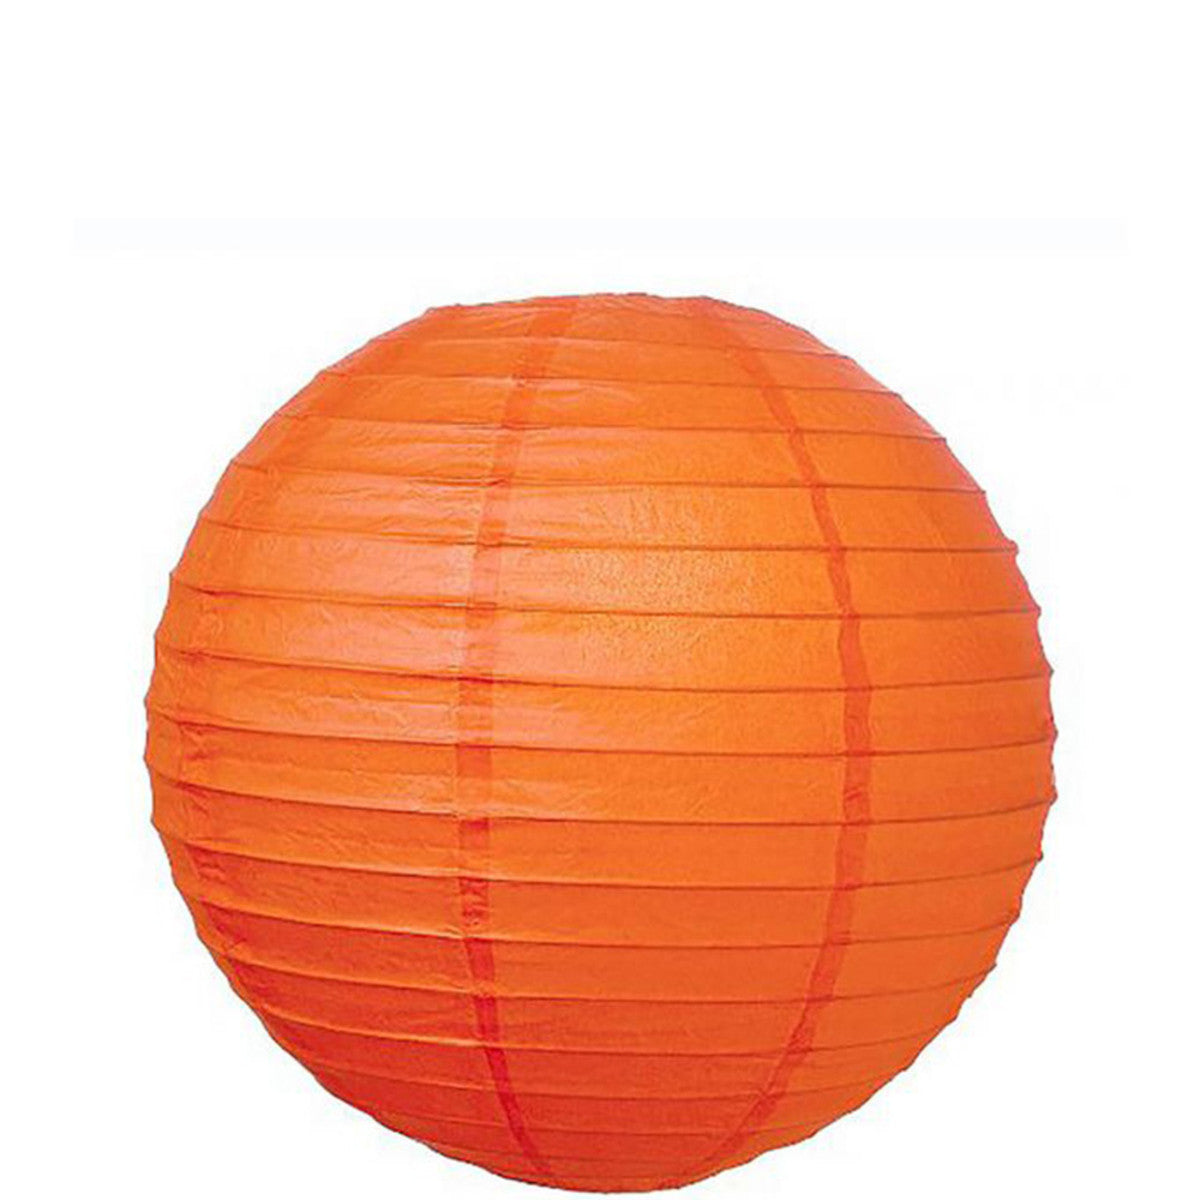 orange paper lanterns for sale online in Dubai